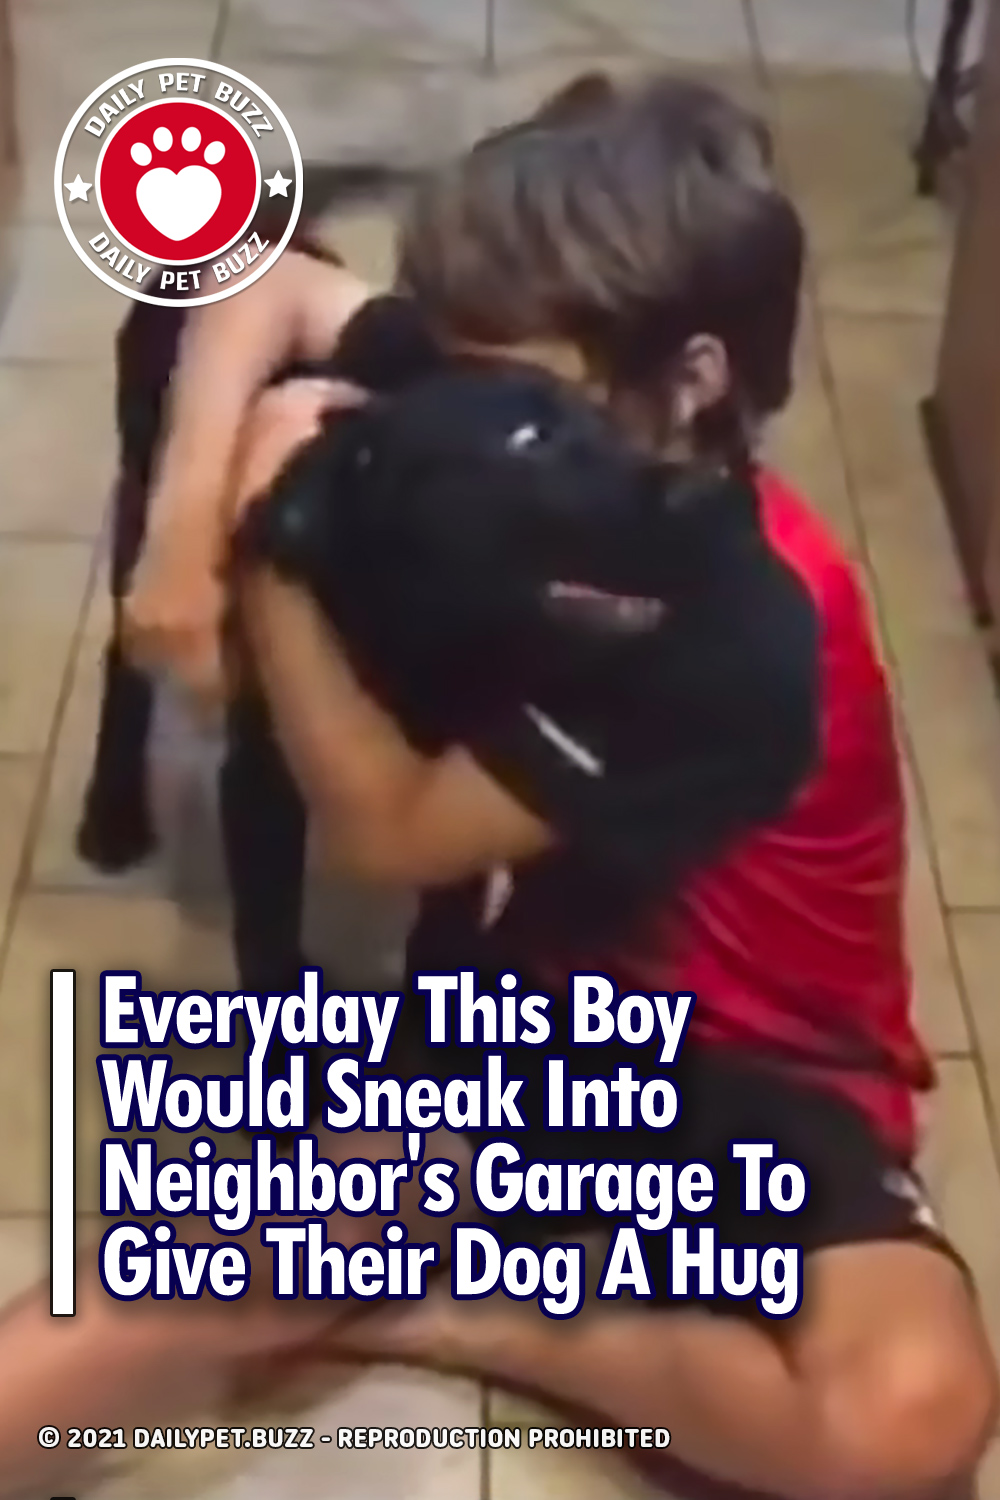 Everyday This Boy Would Sneak Into Neighbor\'s Garage To Give Their Dog A Hug